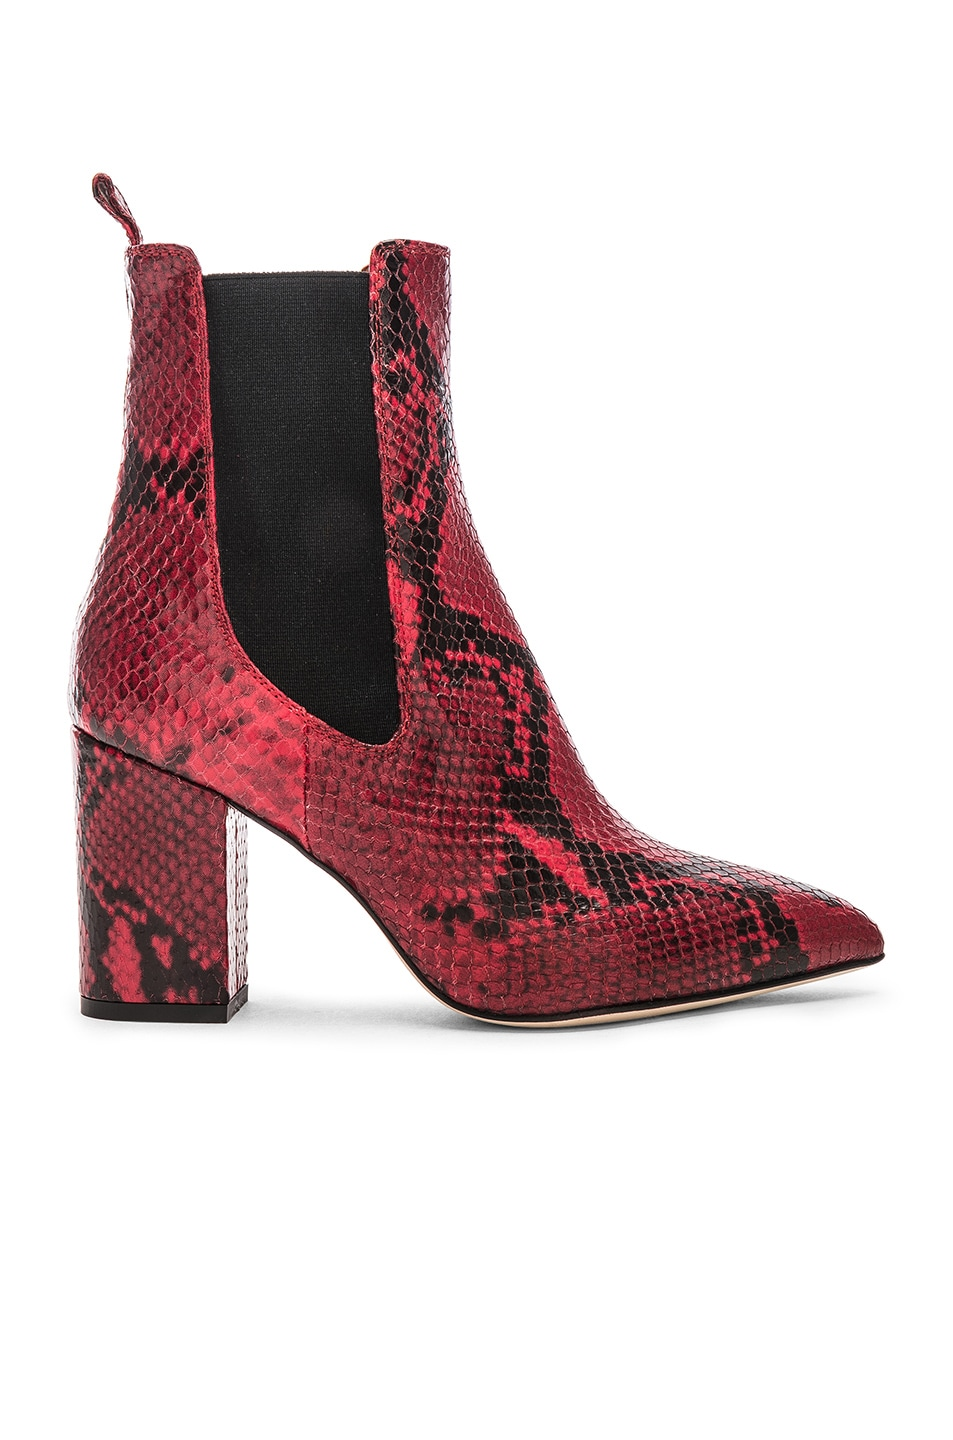 Image 1 of Paris Texas Python Print Ankle Boot in Red